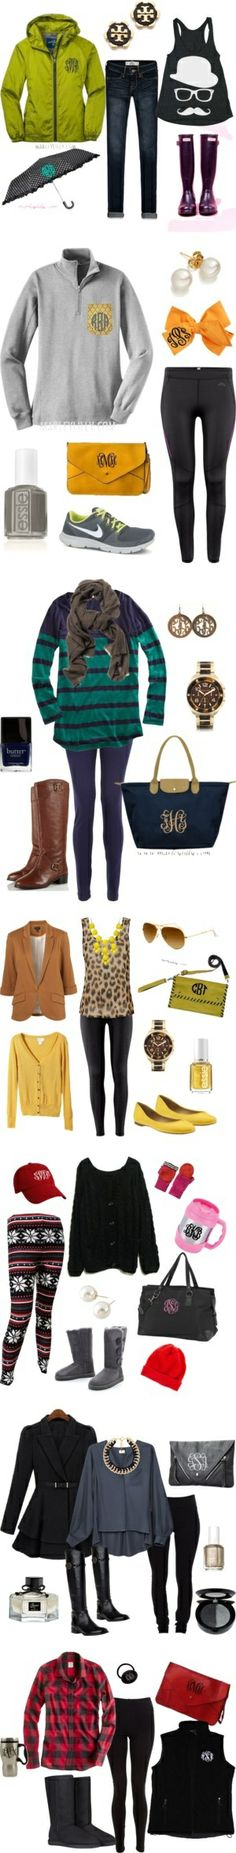 Monogram EVERYTHING might be a little over the top but I love every item on this